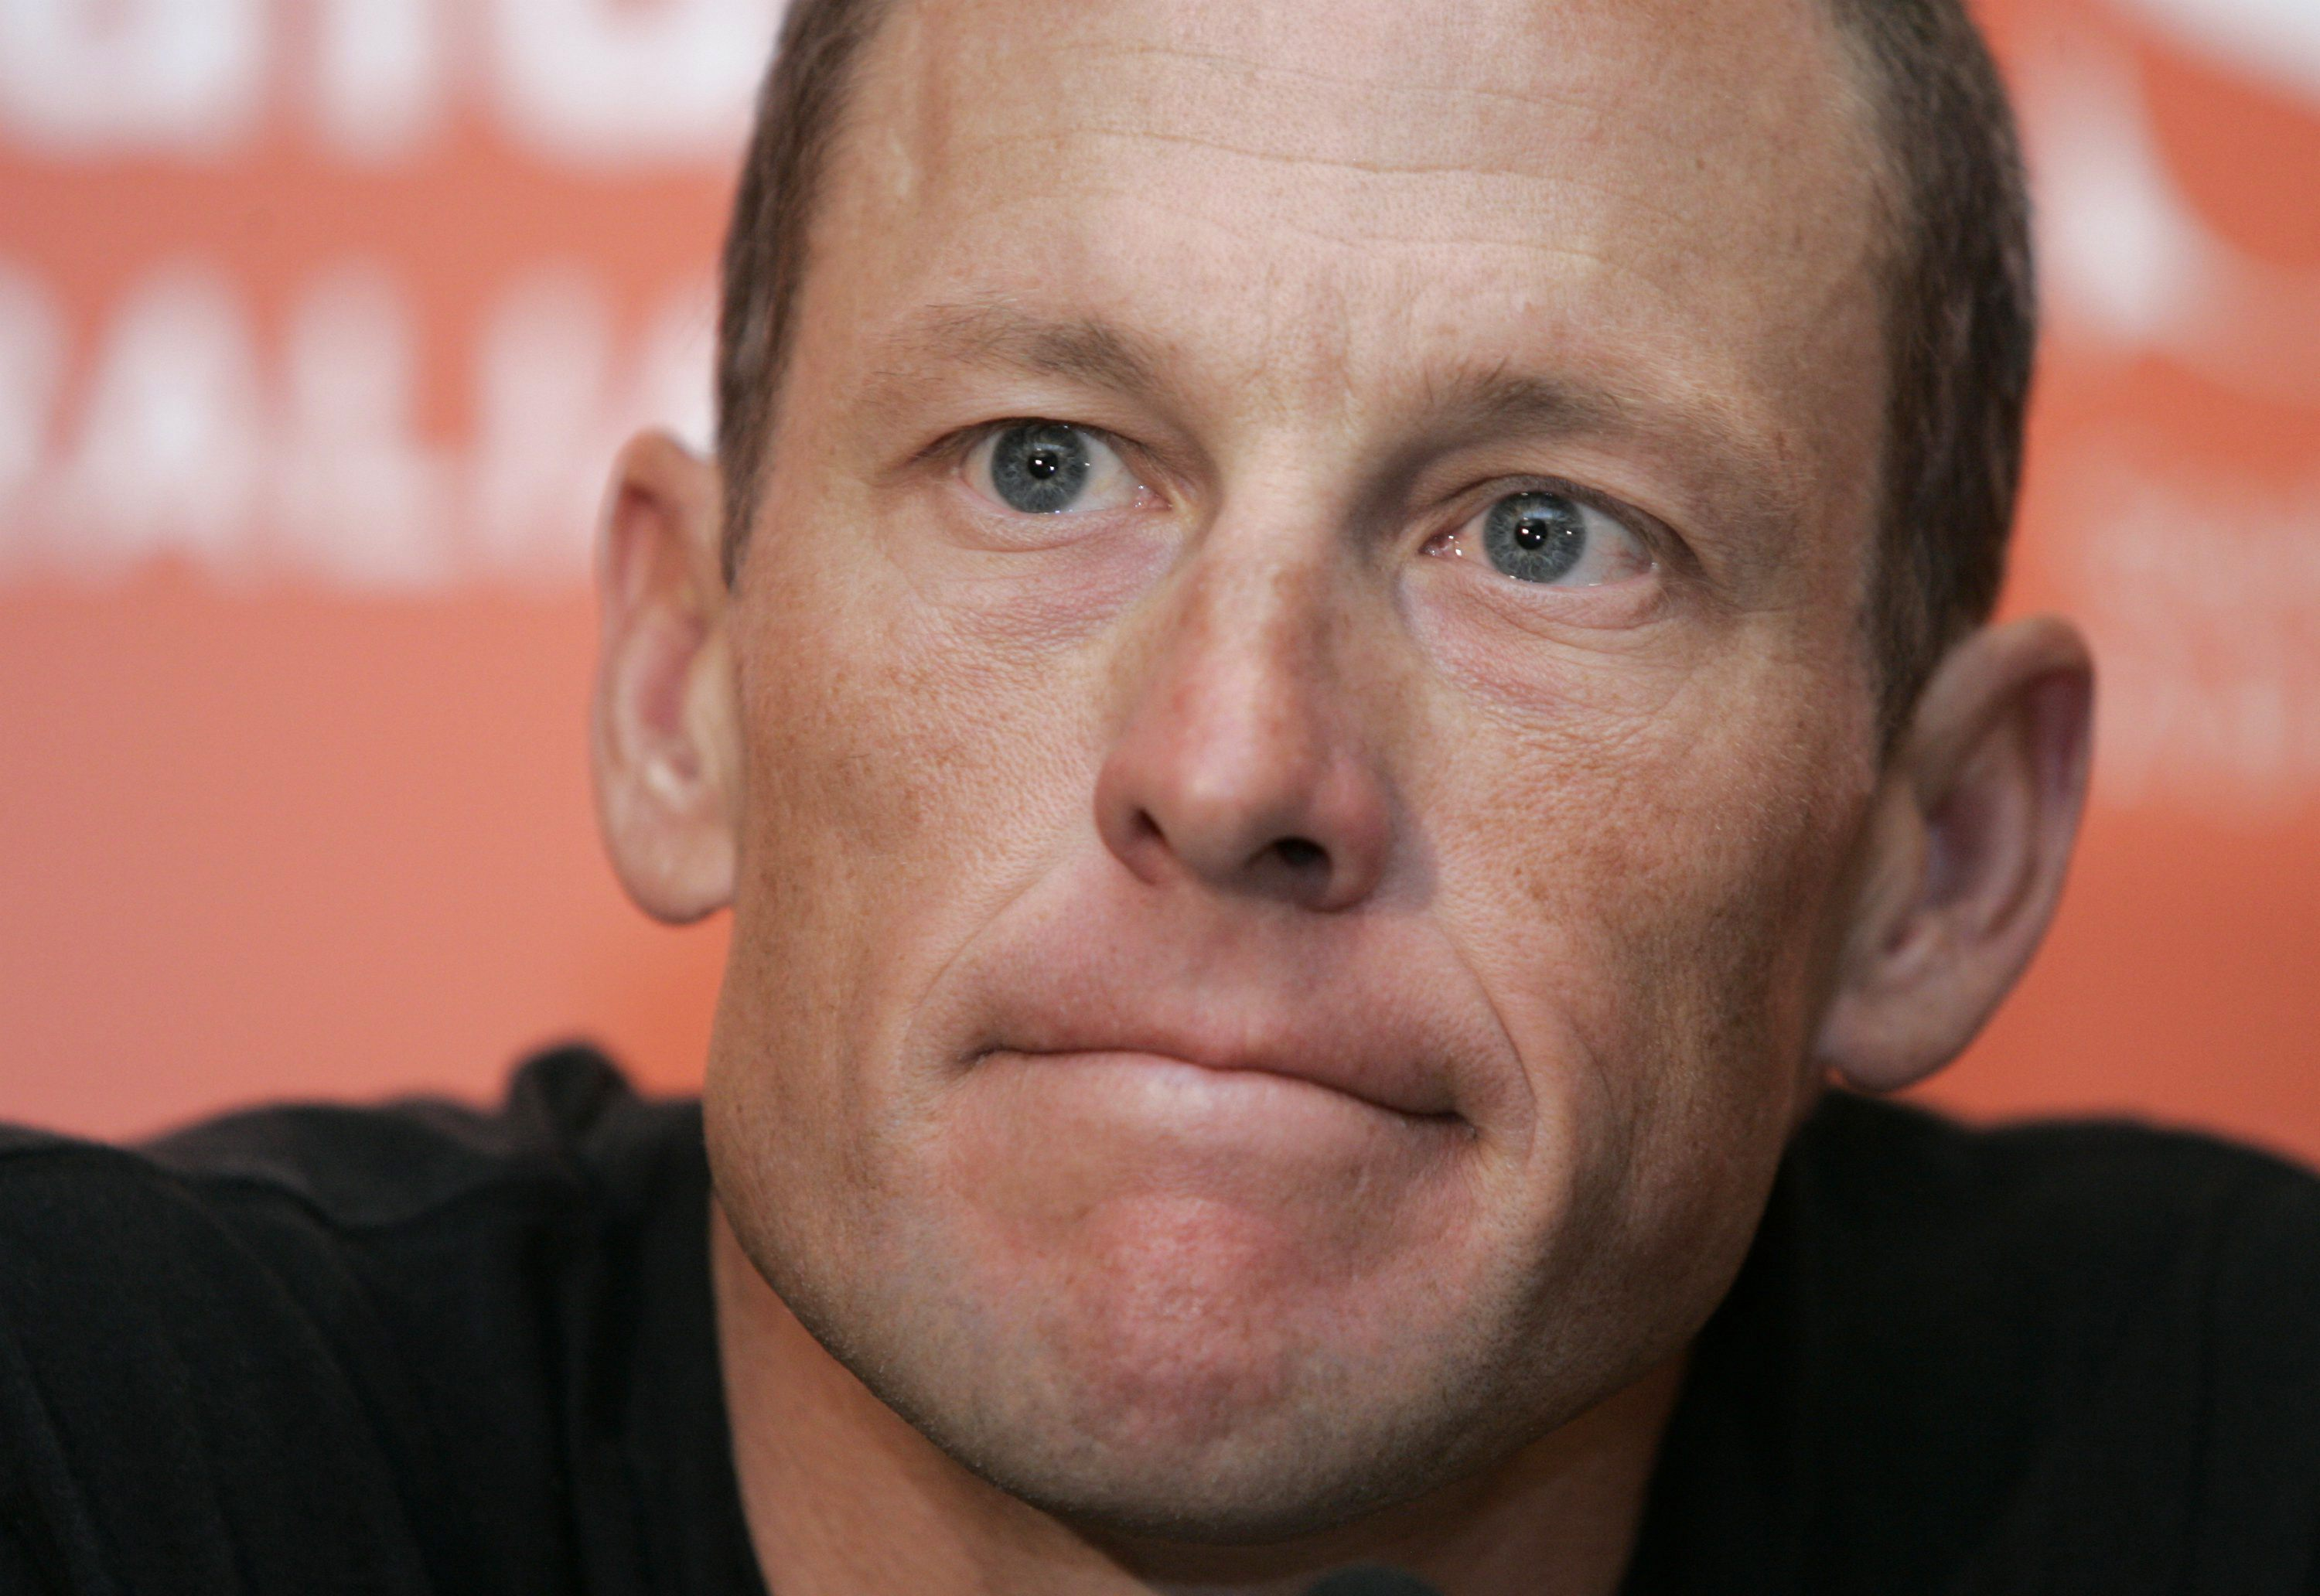 Lance Armstrong has decided not to defend himself against doping accusations. (AFP)